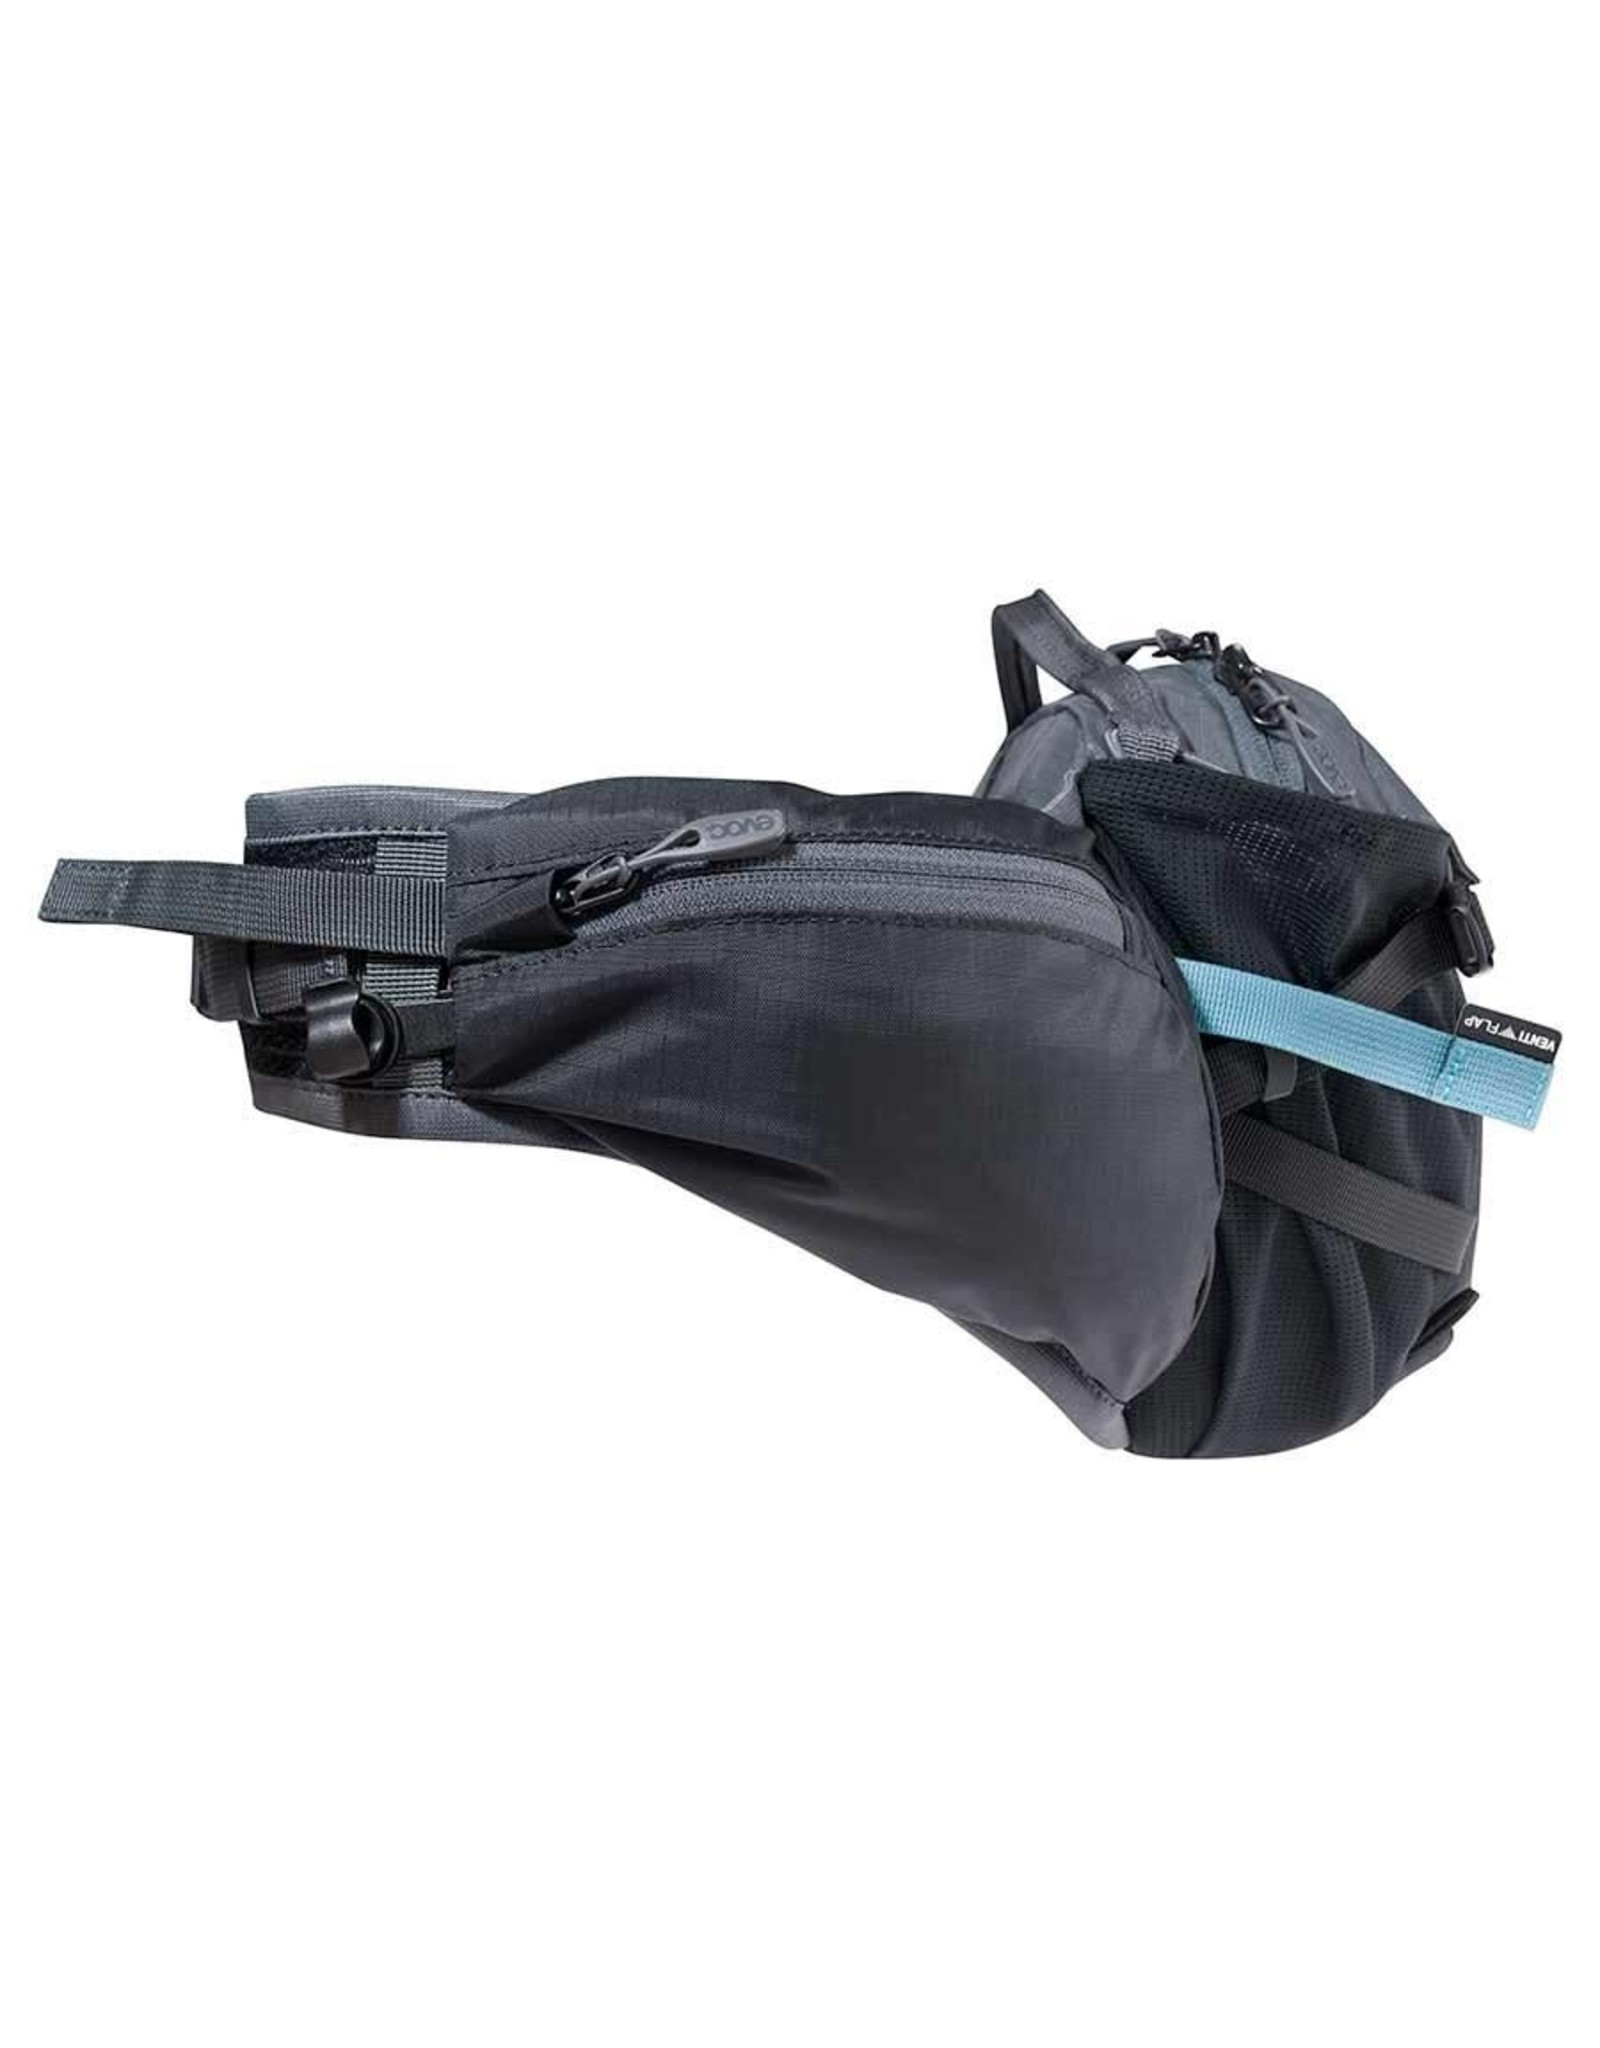 EVOC EVOC, Hip Pack Pro, Hydration Bag, Volume: 3L, Bladder: Included (1.5L), Black/Carbon Grey